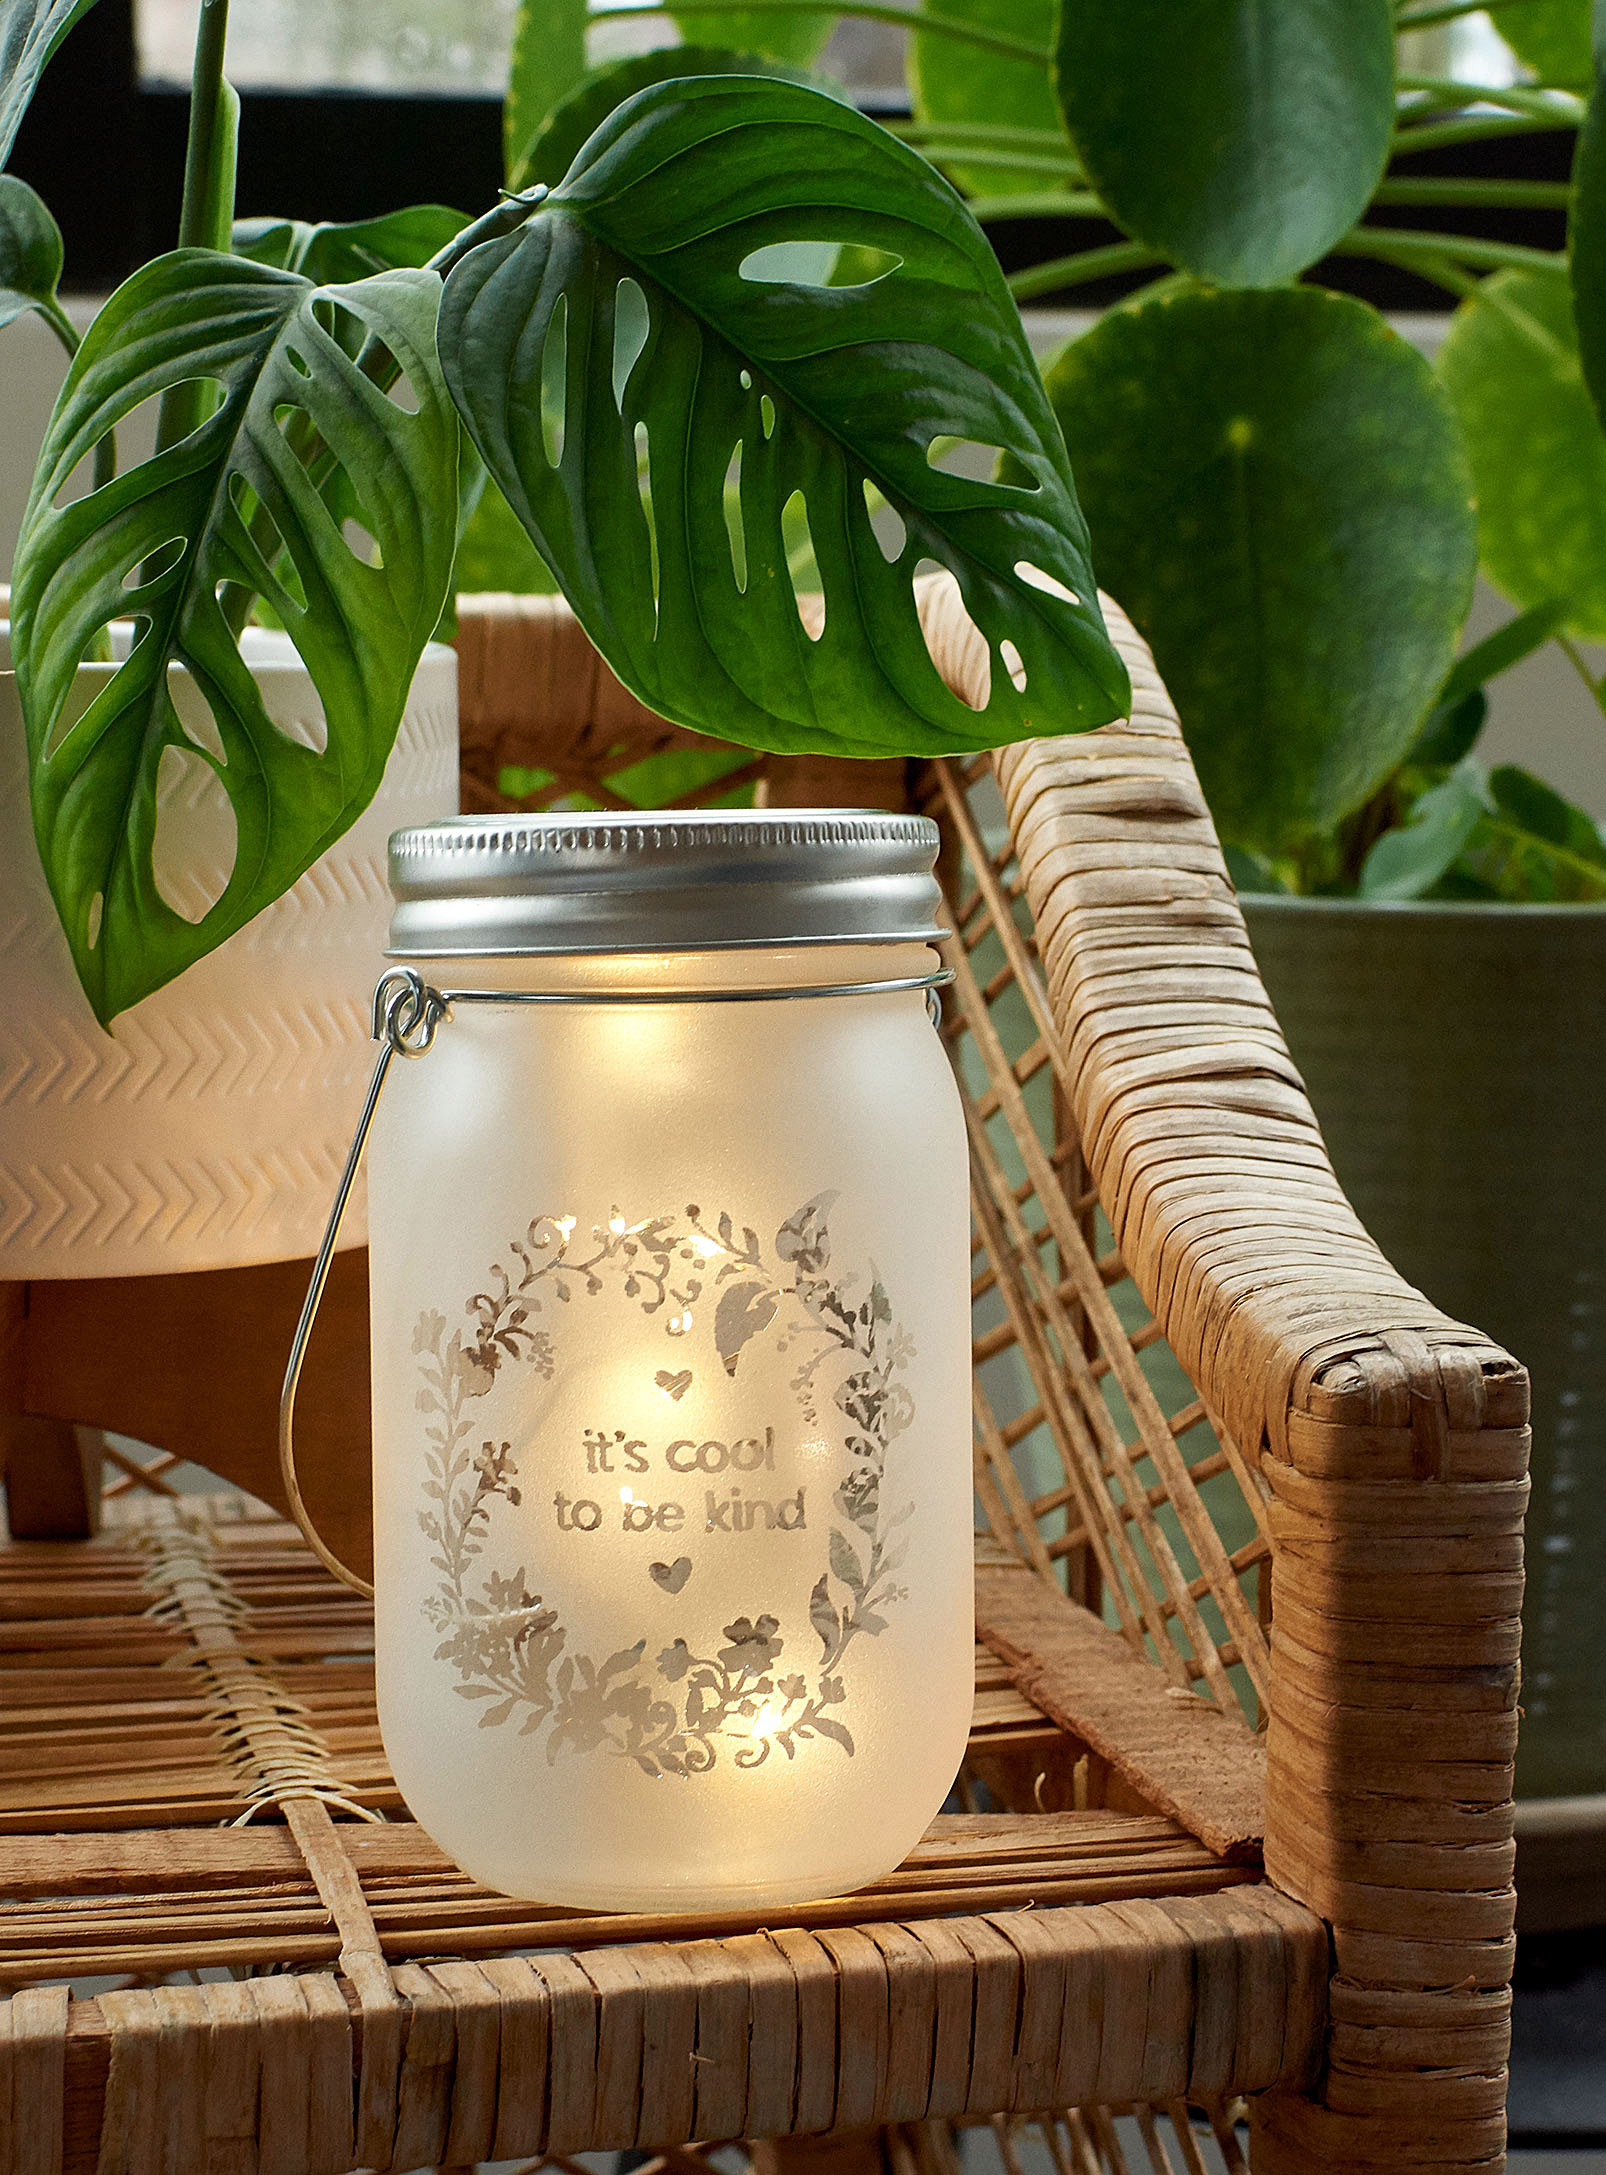 the jar that says it's cool to be kind